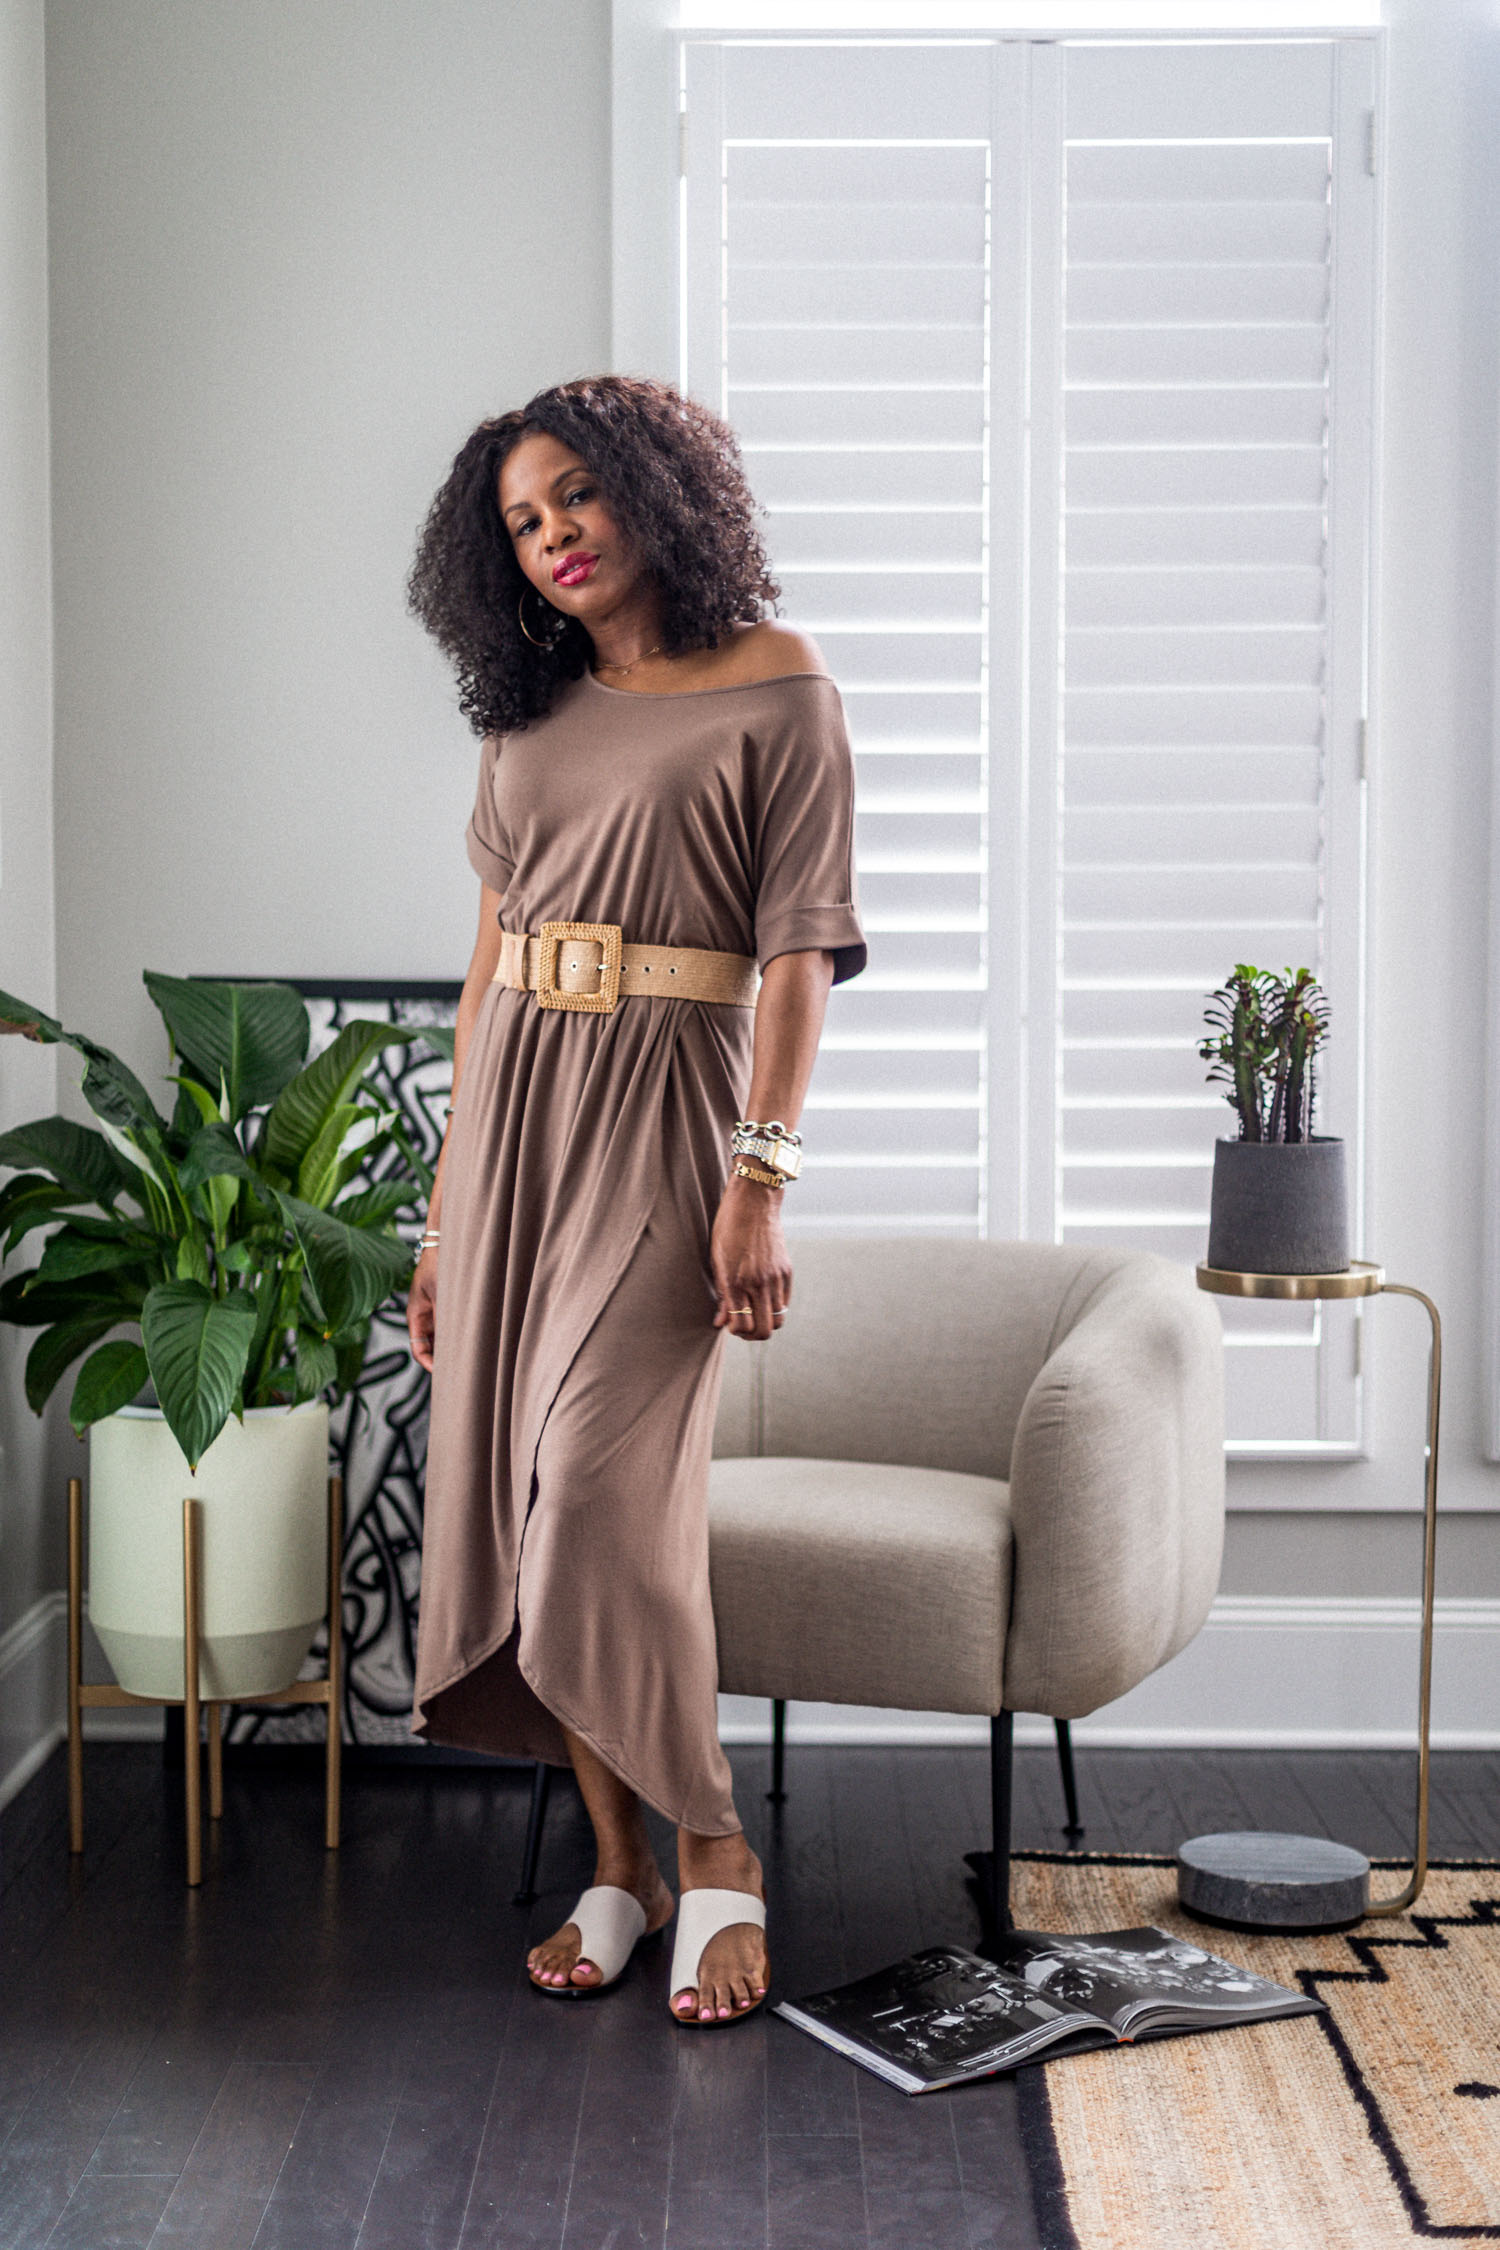 atlanta fashion blogger wearing loungewear dresses for summer, how to style your loungewear, how to style a loungewear dress, loungewear, how to look cute in loungewear, the best loungewear to wear at home, wrap dress, outfit inspiration, loungewear outfit inspiration, beige dress, beige lounge dress,